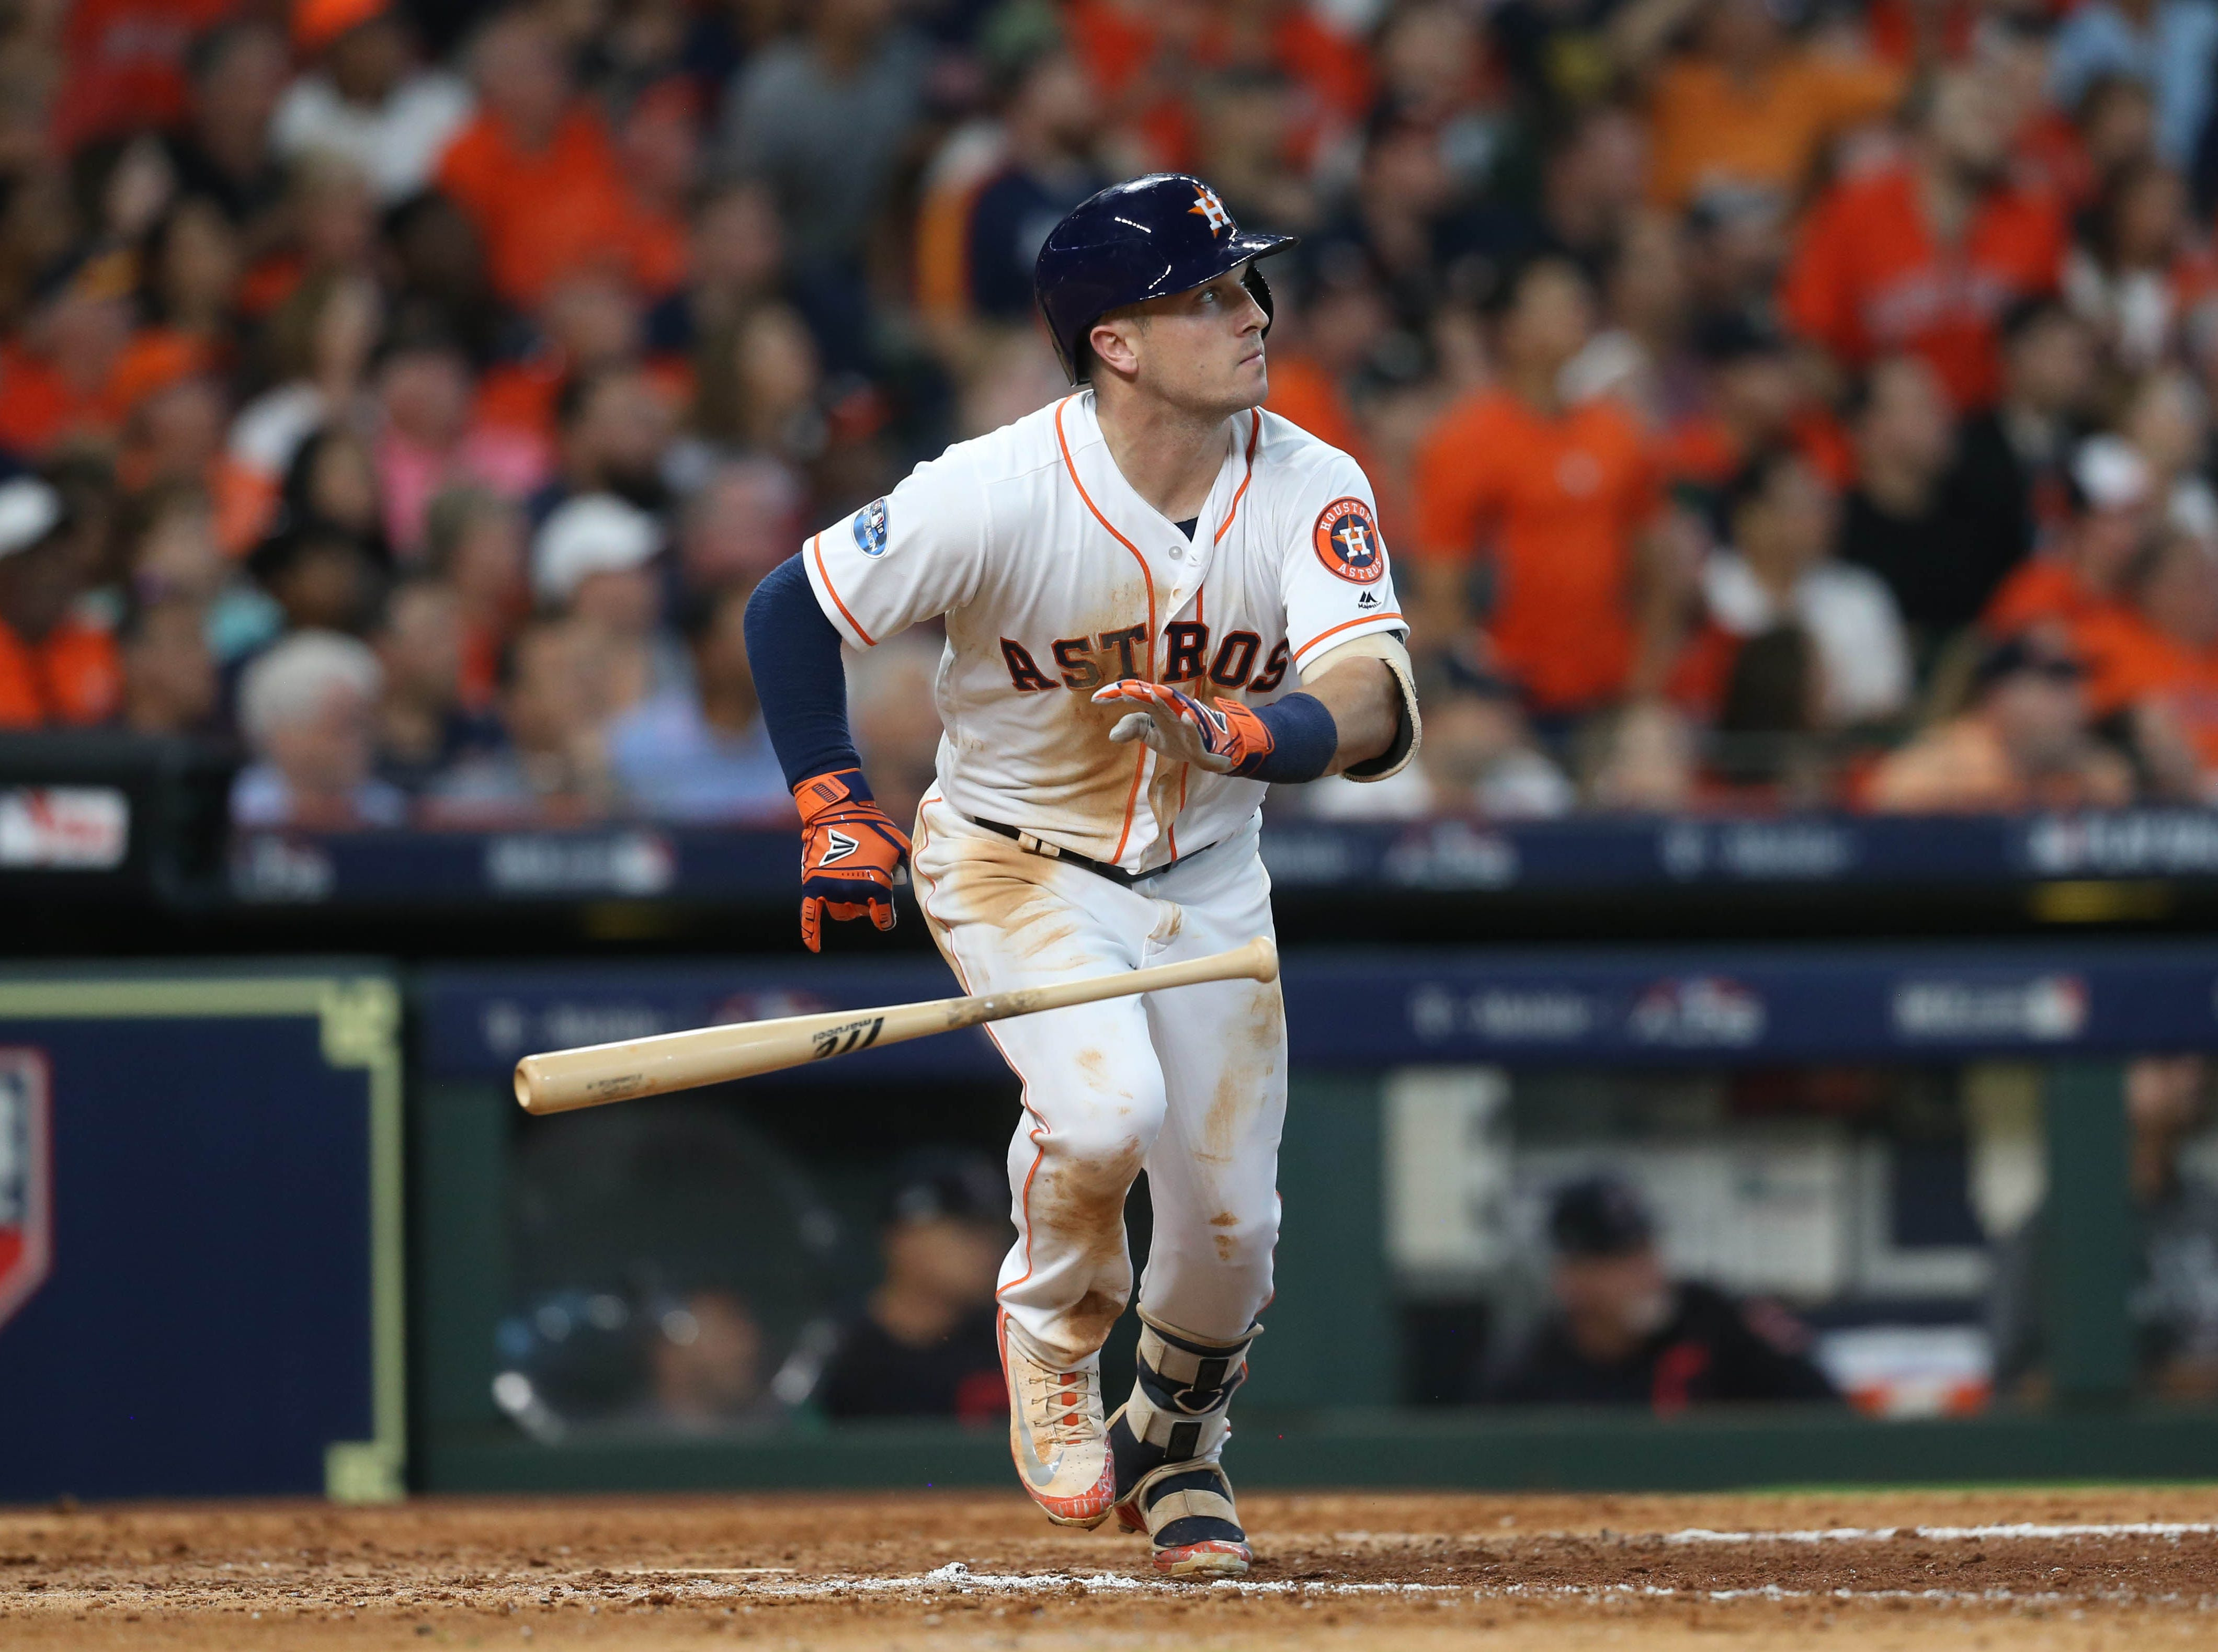 22. Alex Bregman, Houston Astros shortstop/third baseman.